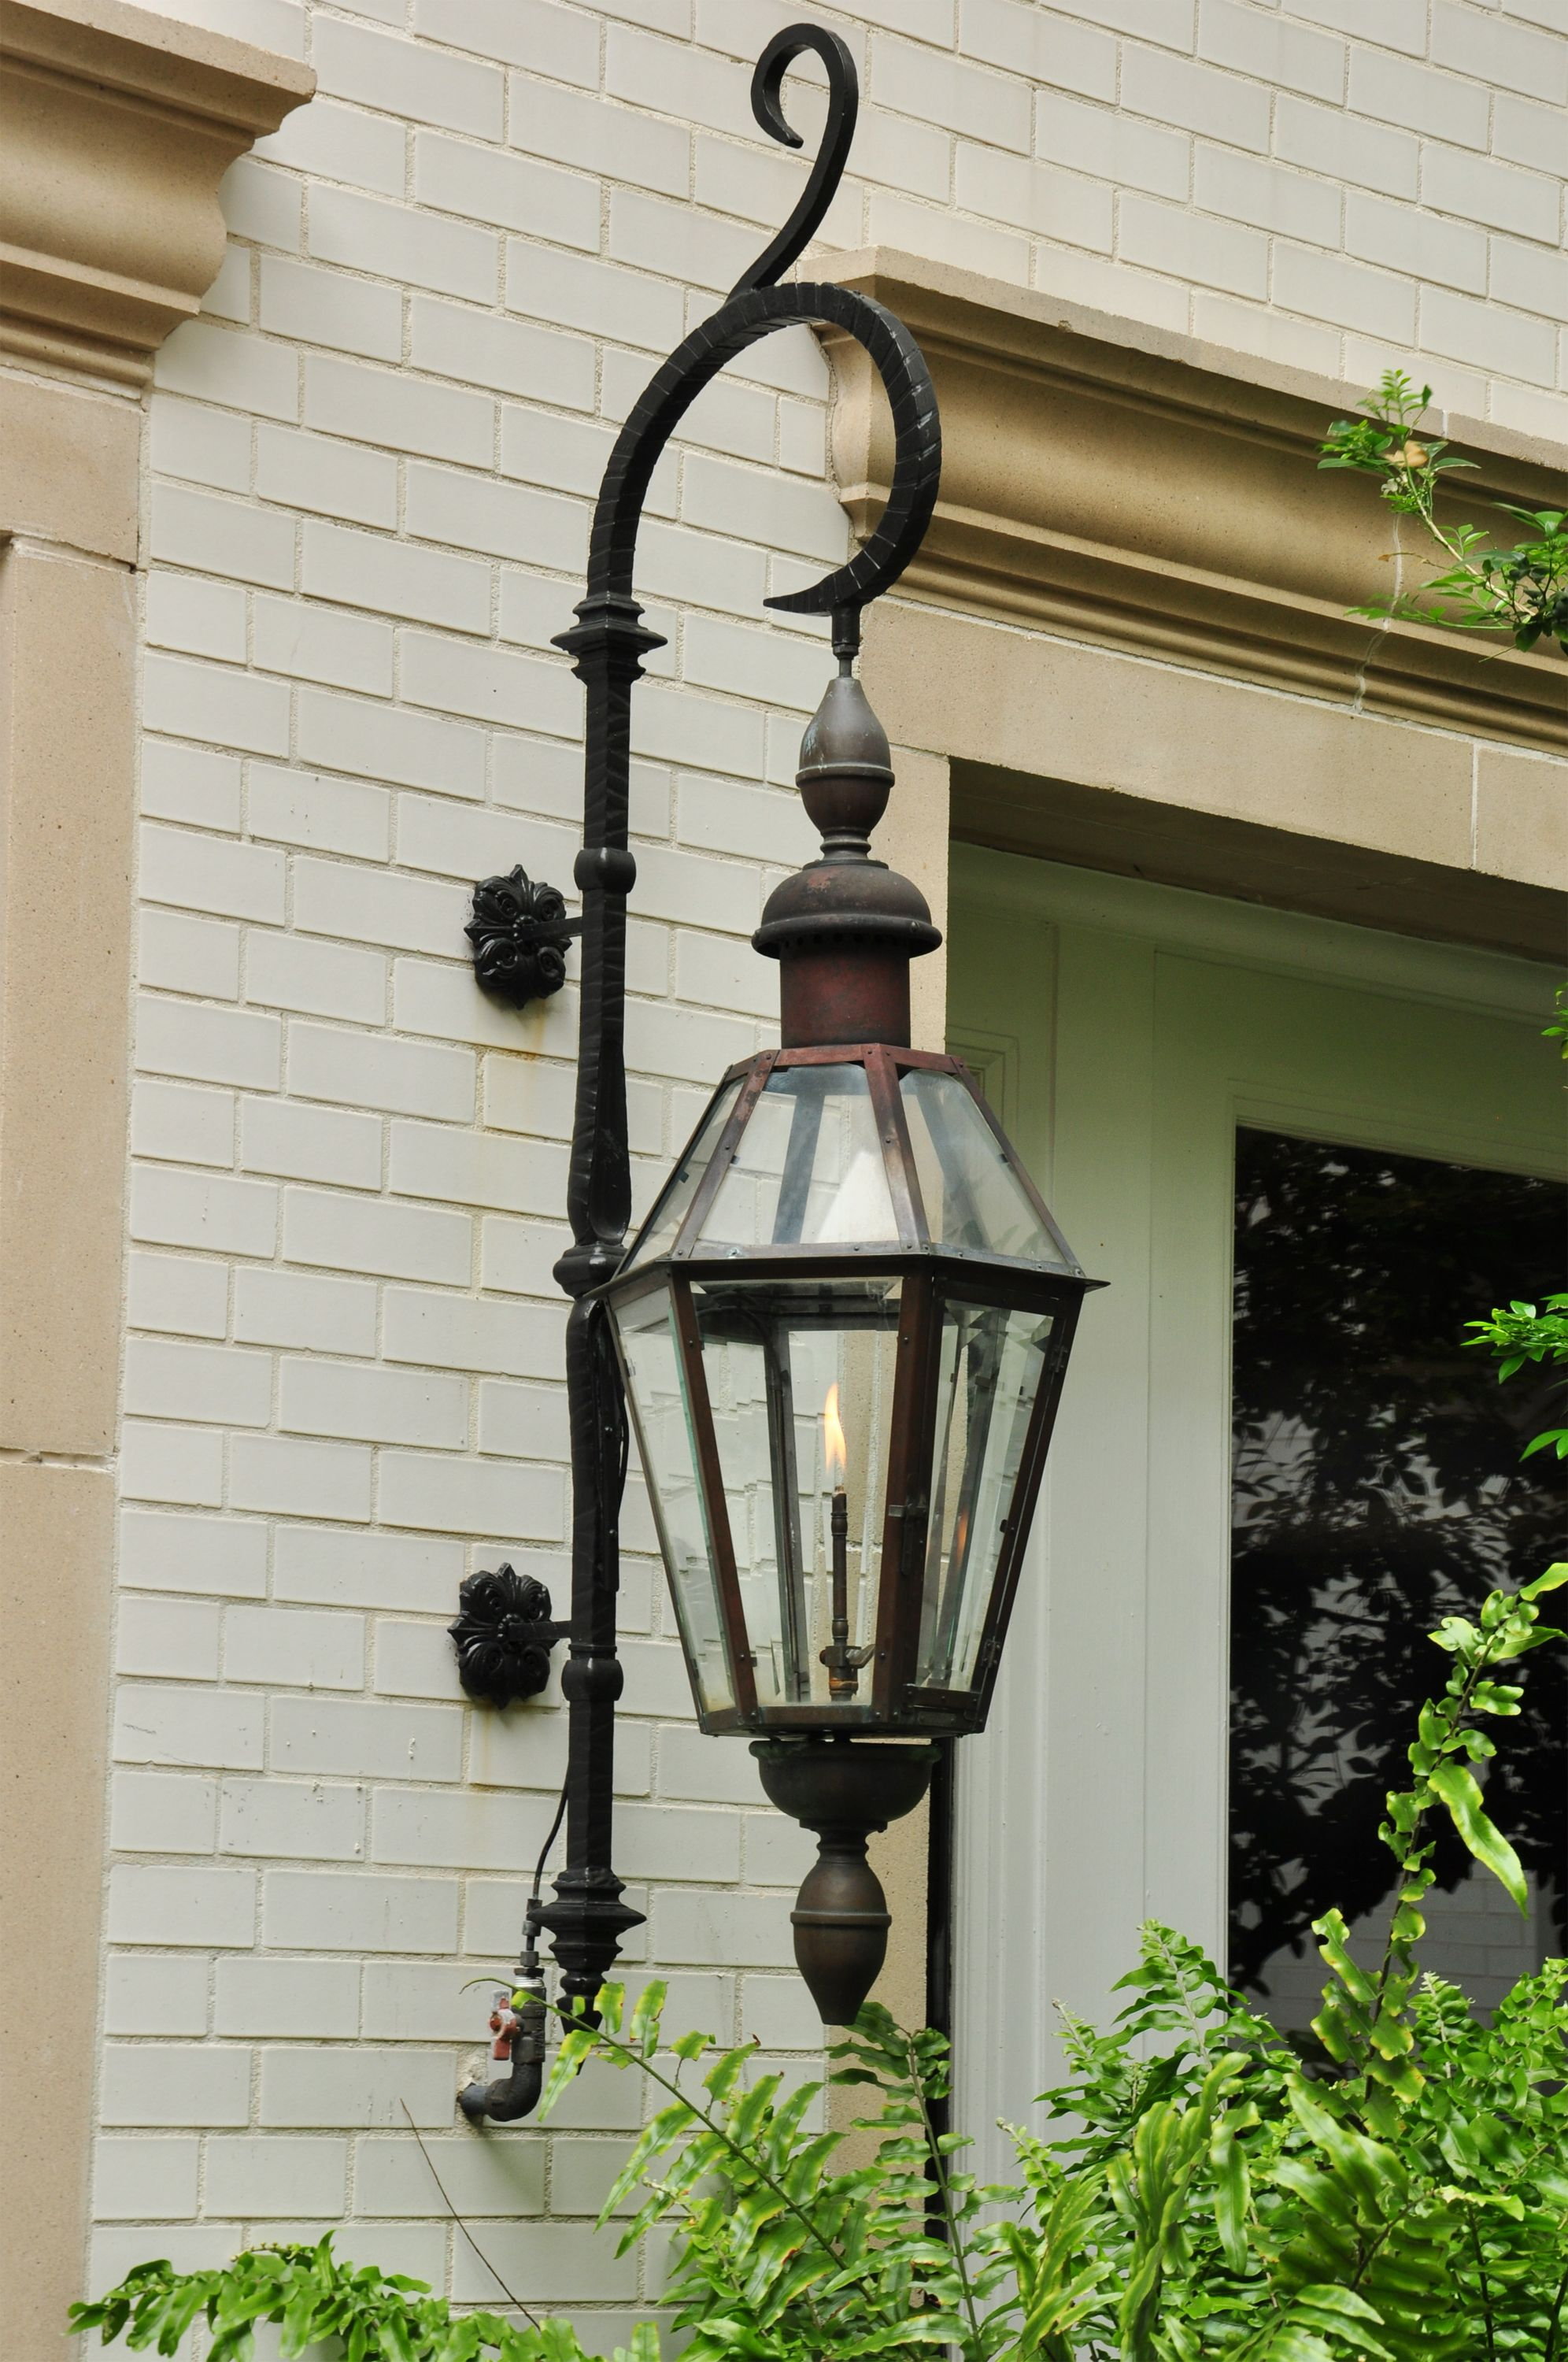 The Canal Street Light Makes A Prominent Statement For